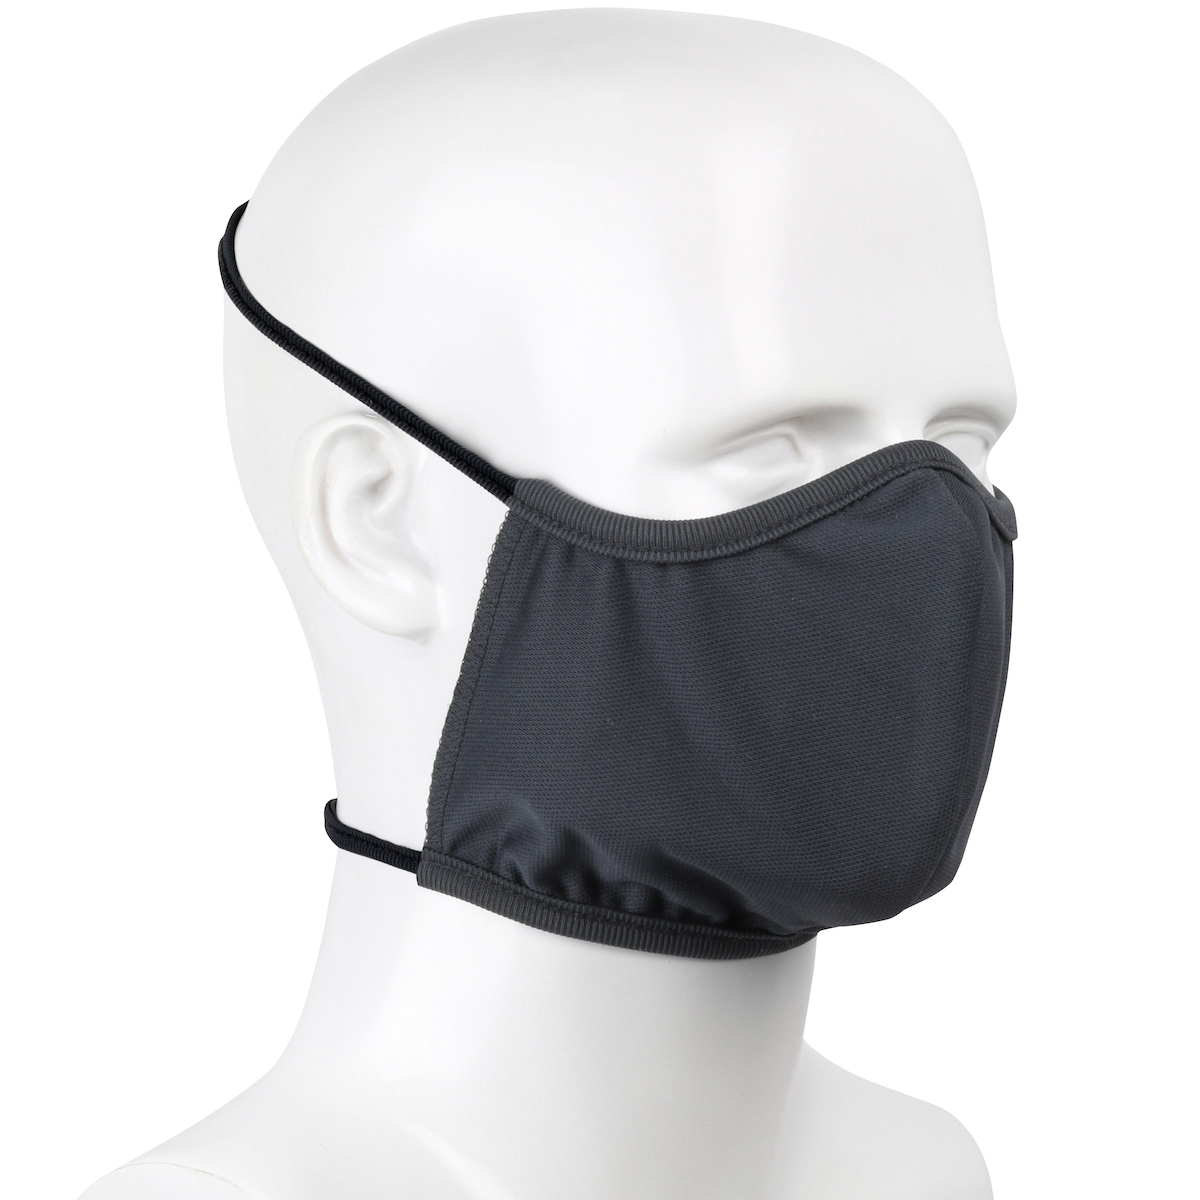 PIP® 2-ply Polyester Anti-microbial Treated Reusable Face Covers with Head Band Straps